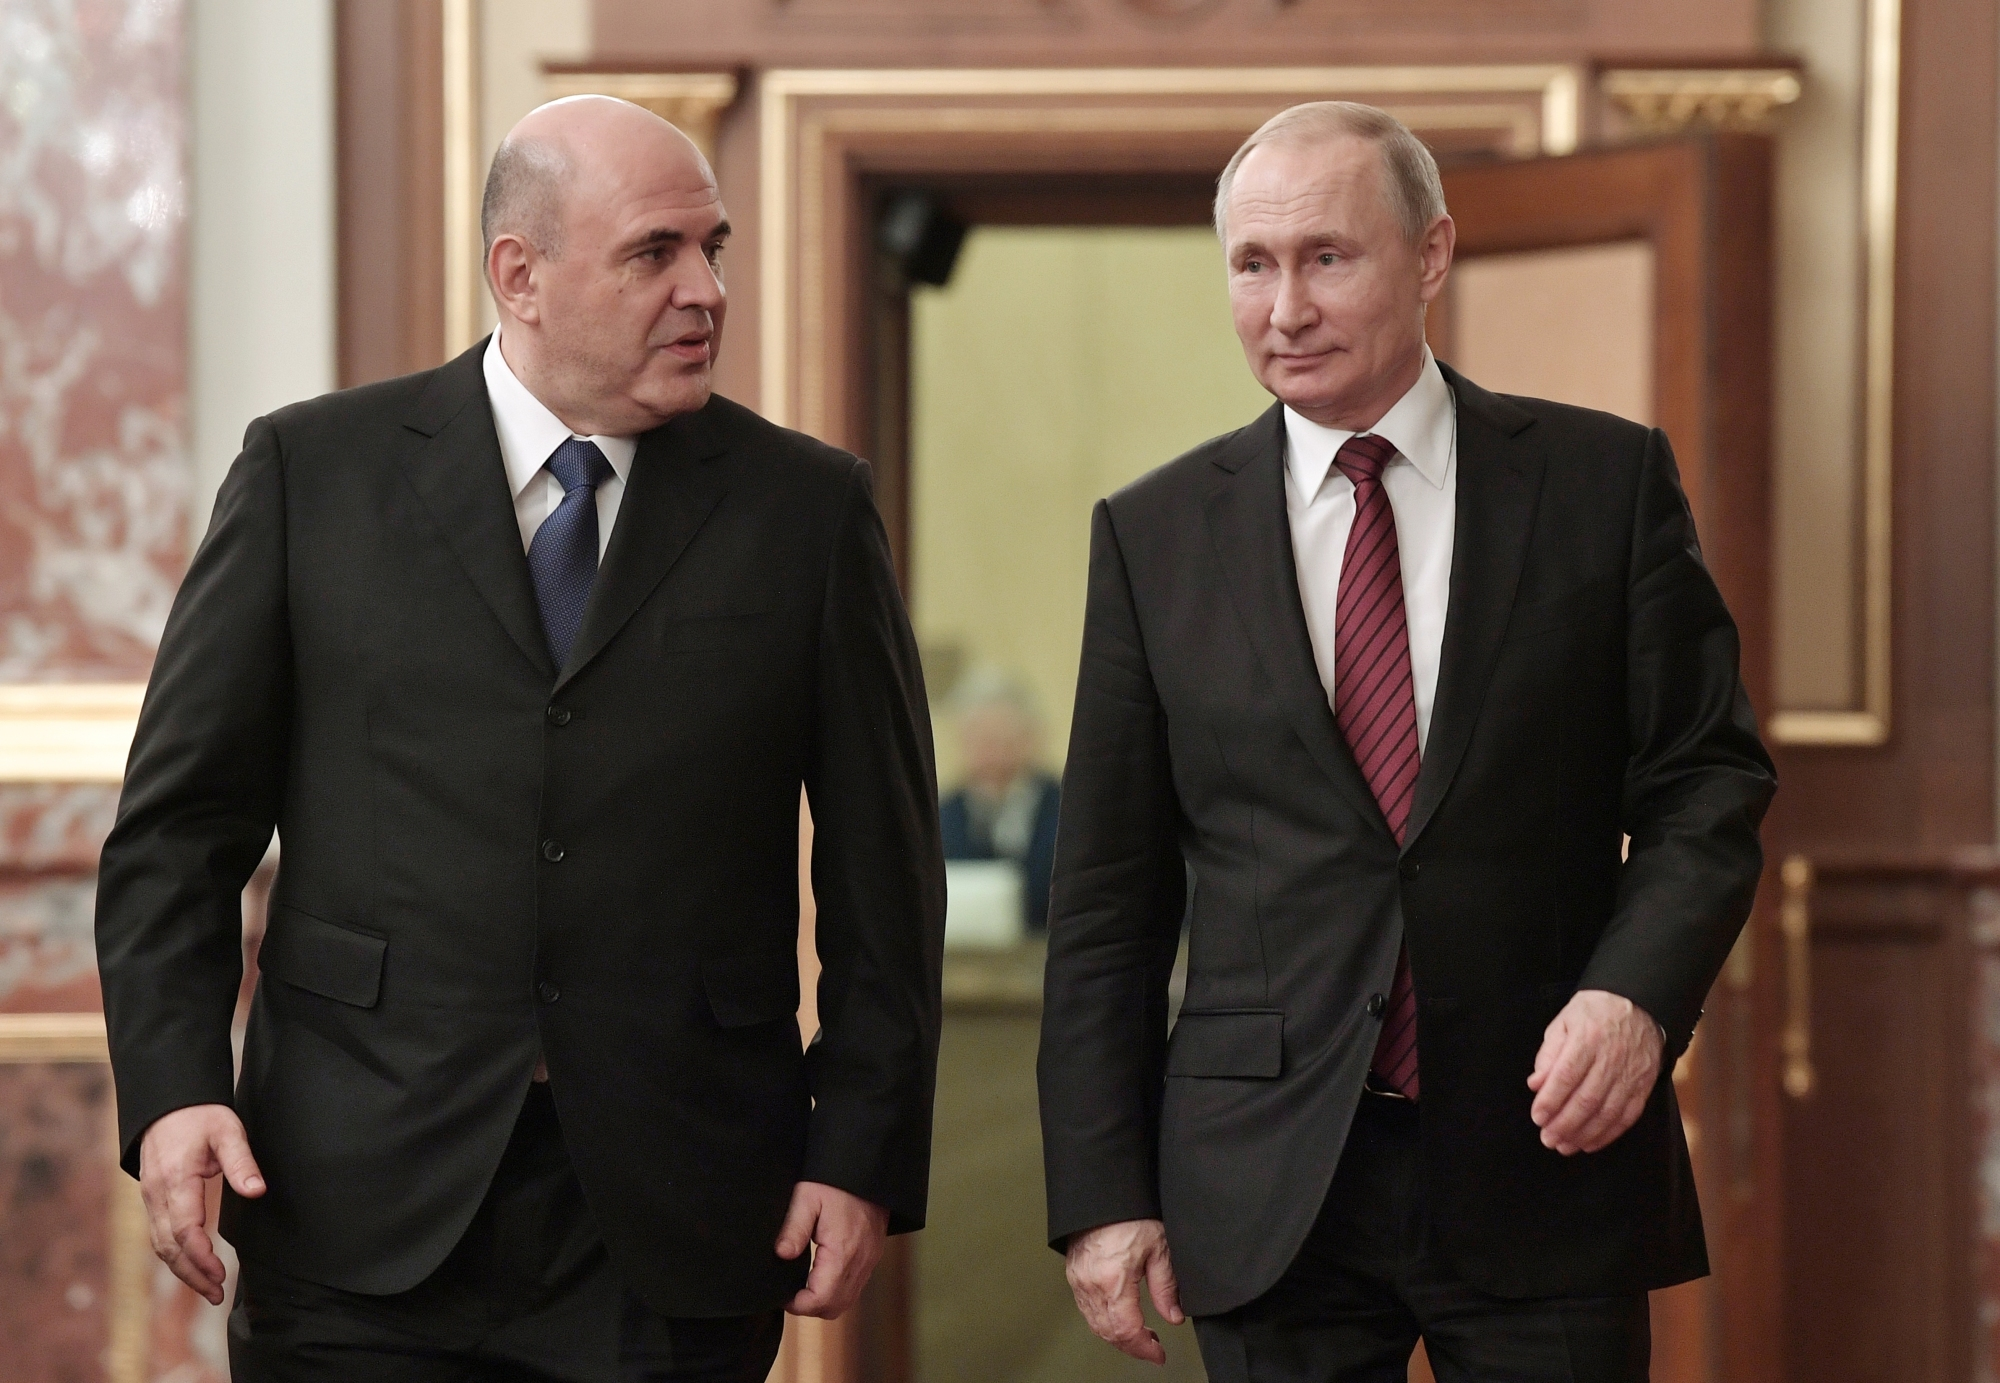 Russian President Vladimir Putin (right) and new Russian Prime Minister Mikhail Mishustin arrive to attend a new cabinet meeting in Moscow Tuesday0. Putin formed his new Cabinet Tuesday, replacing many of its members but keeping his foreign, defense and finance ministers in place. | ALEXEI NIKOLSKY / SPUTNIK / KREMLIN POOL PHOTO / VIA AP